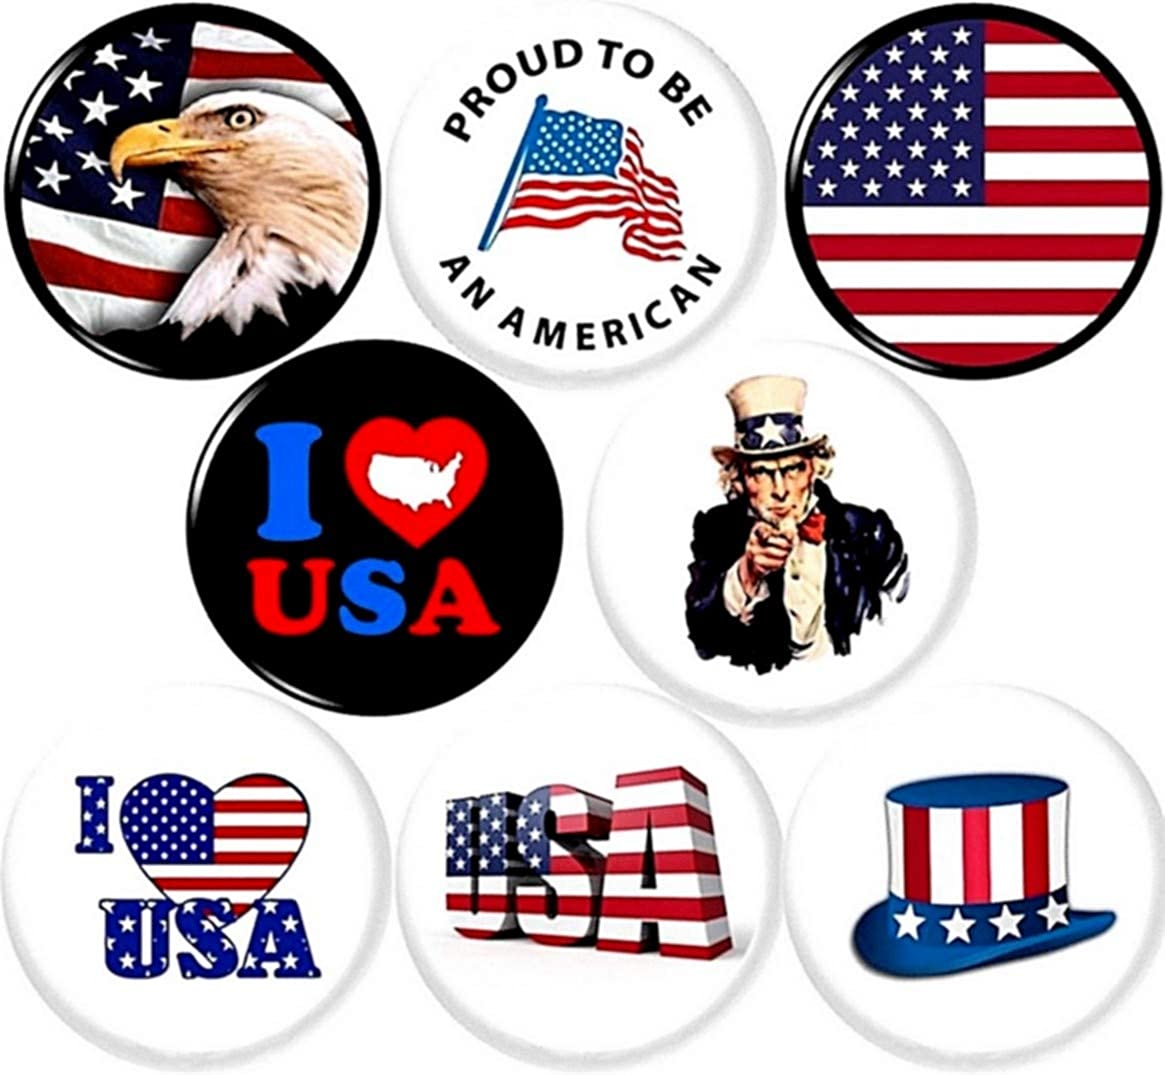 UNITED STATES OF AMERICA FLAG BADGE BUTTON PIN 1inch//25mm diameter USA